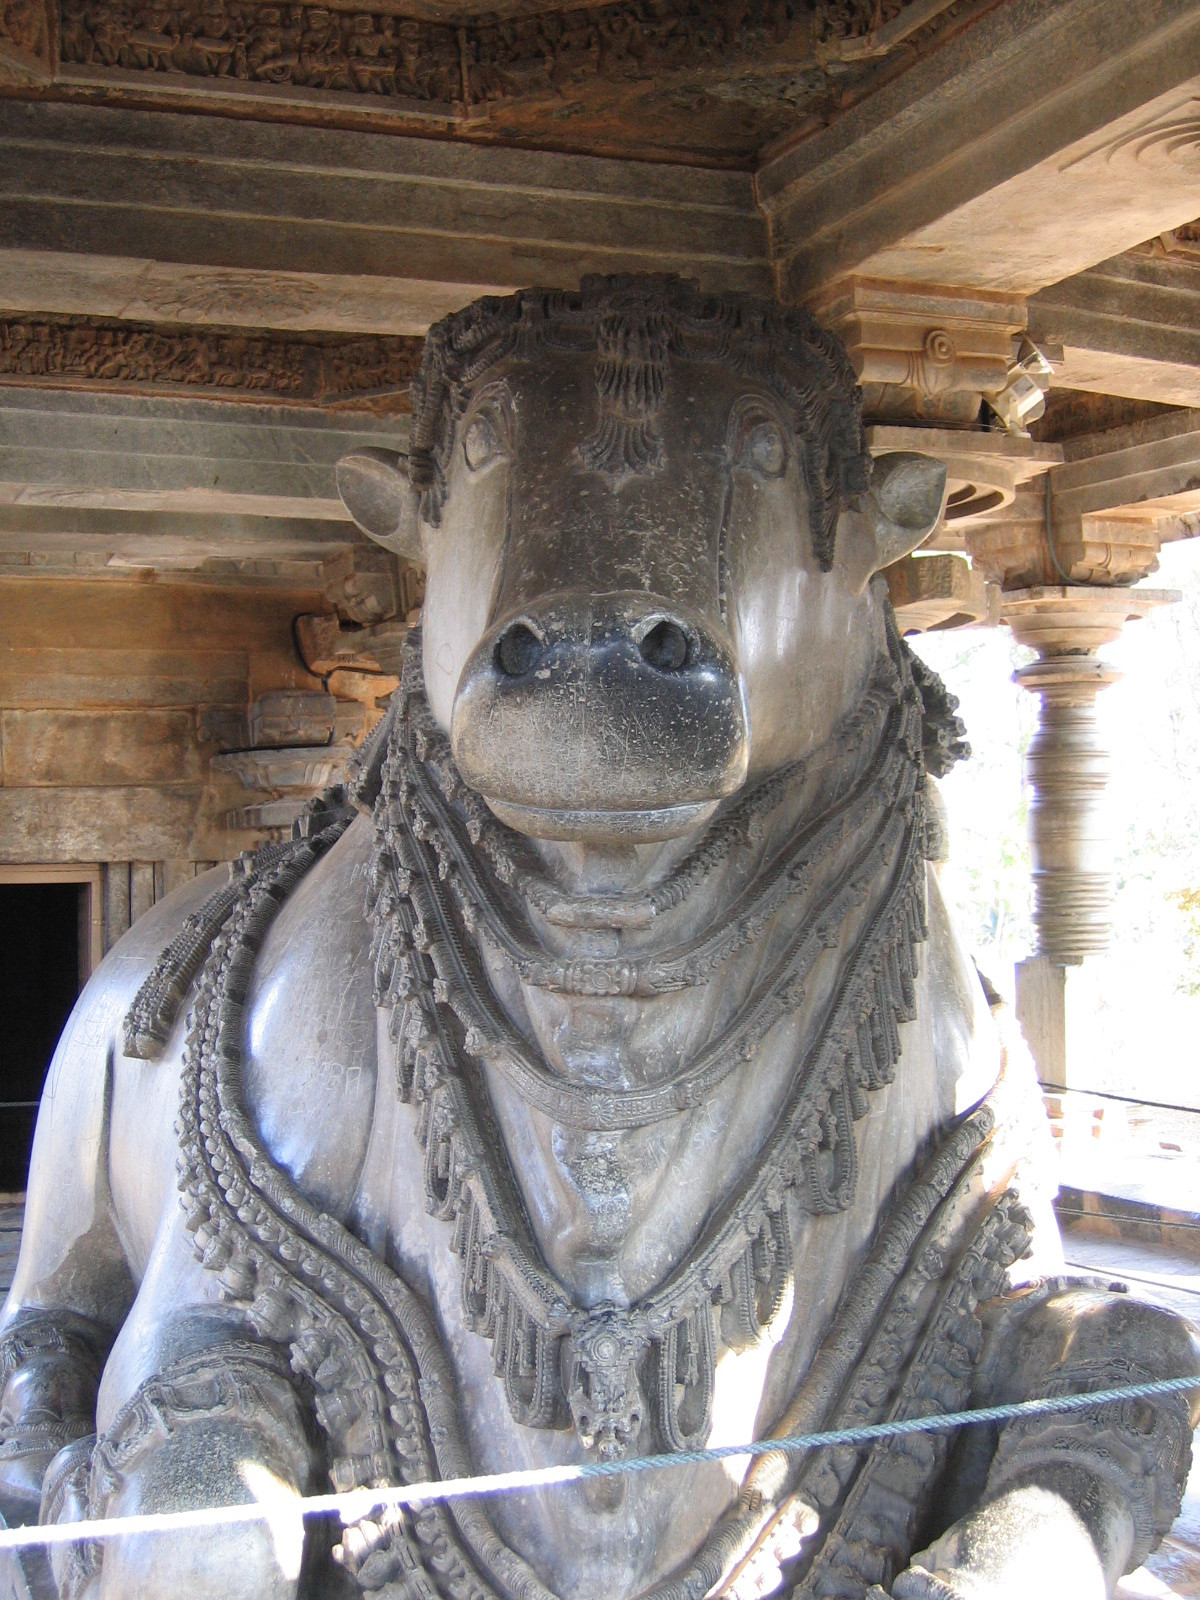 Nandi sculpture in Kedareshwara temple at Halebidu